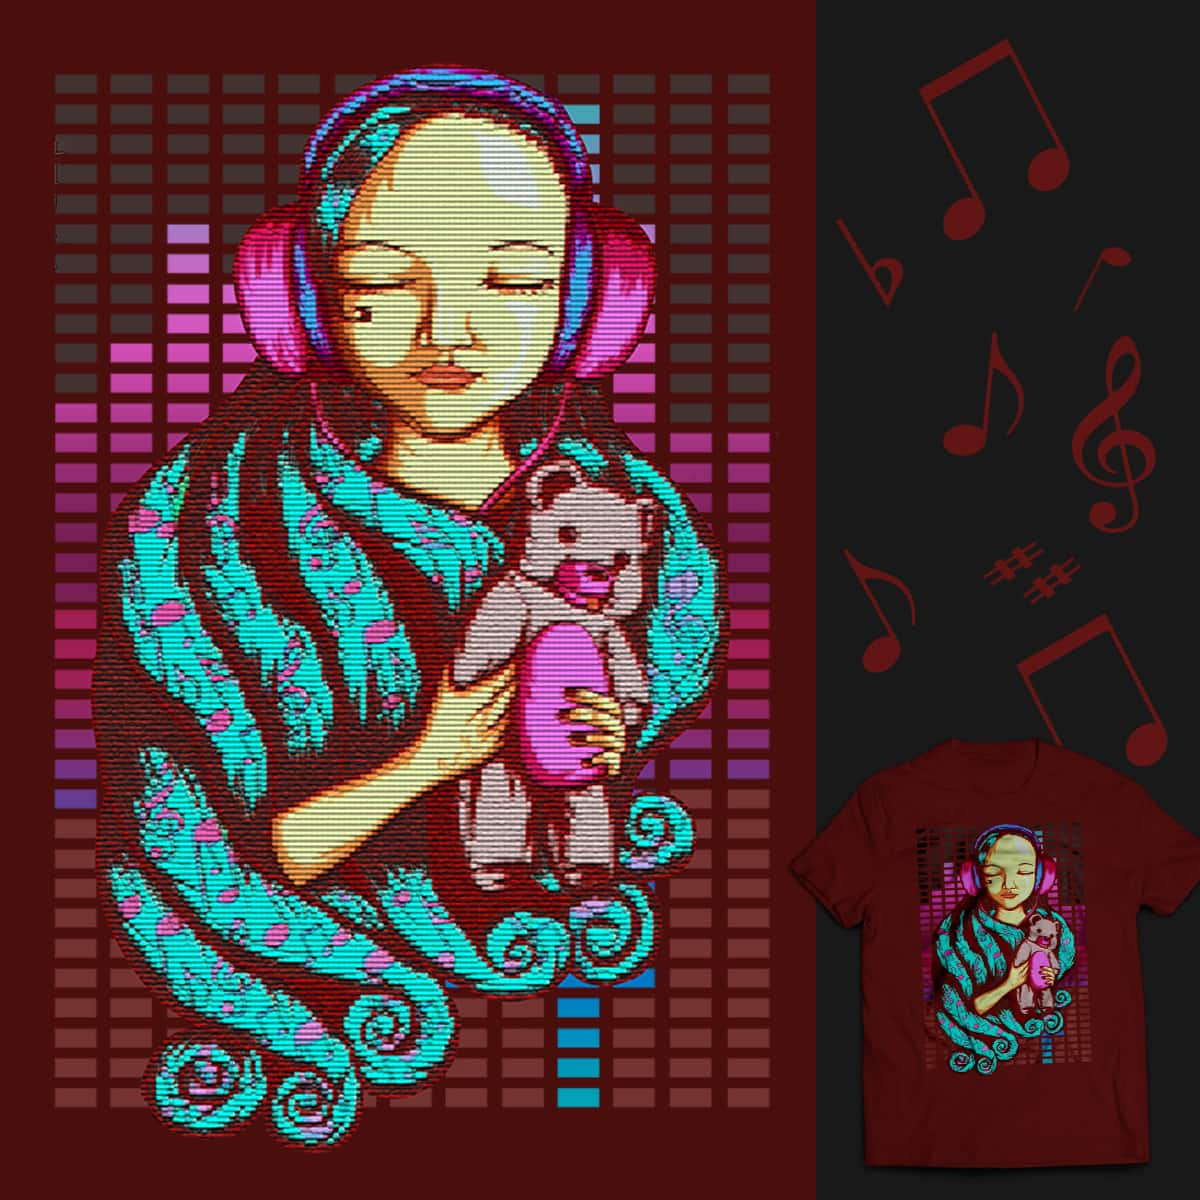 Music calms the heart by Badorskie555 on Threadless